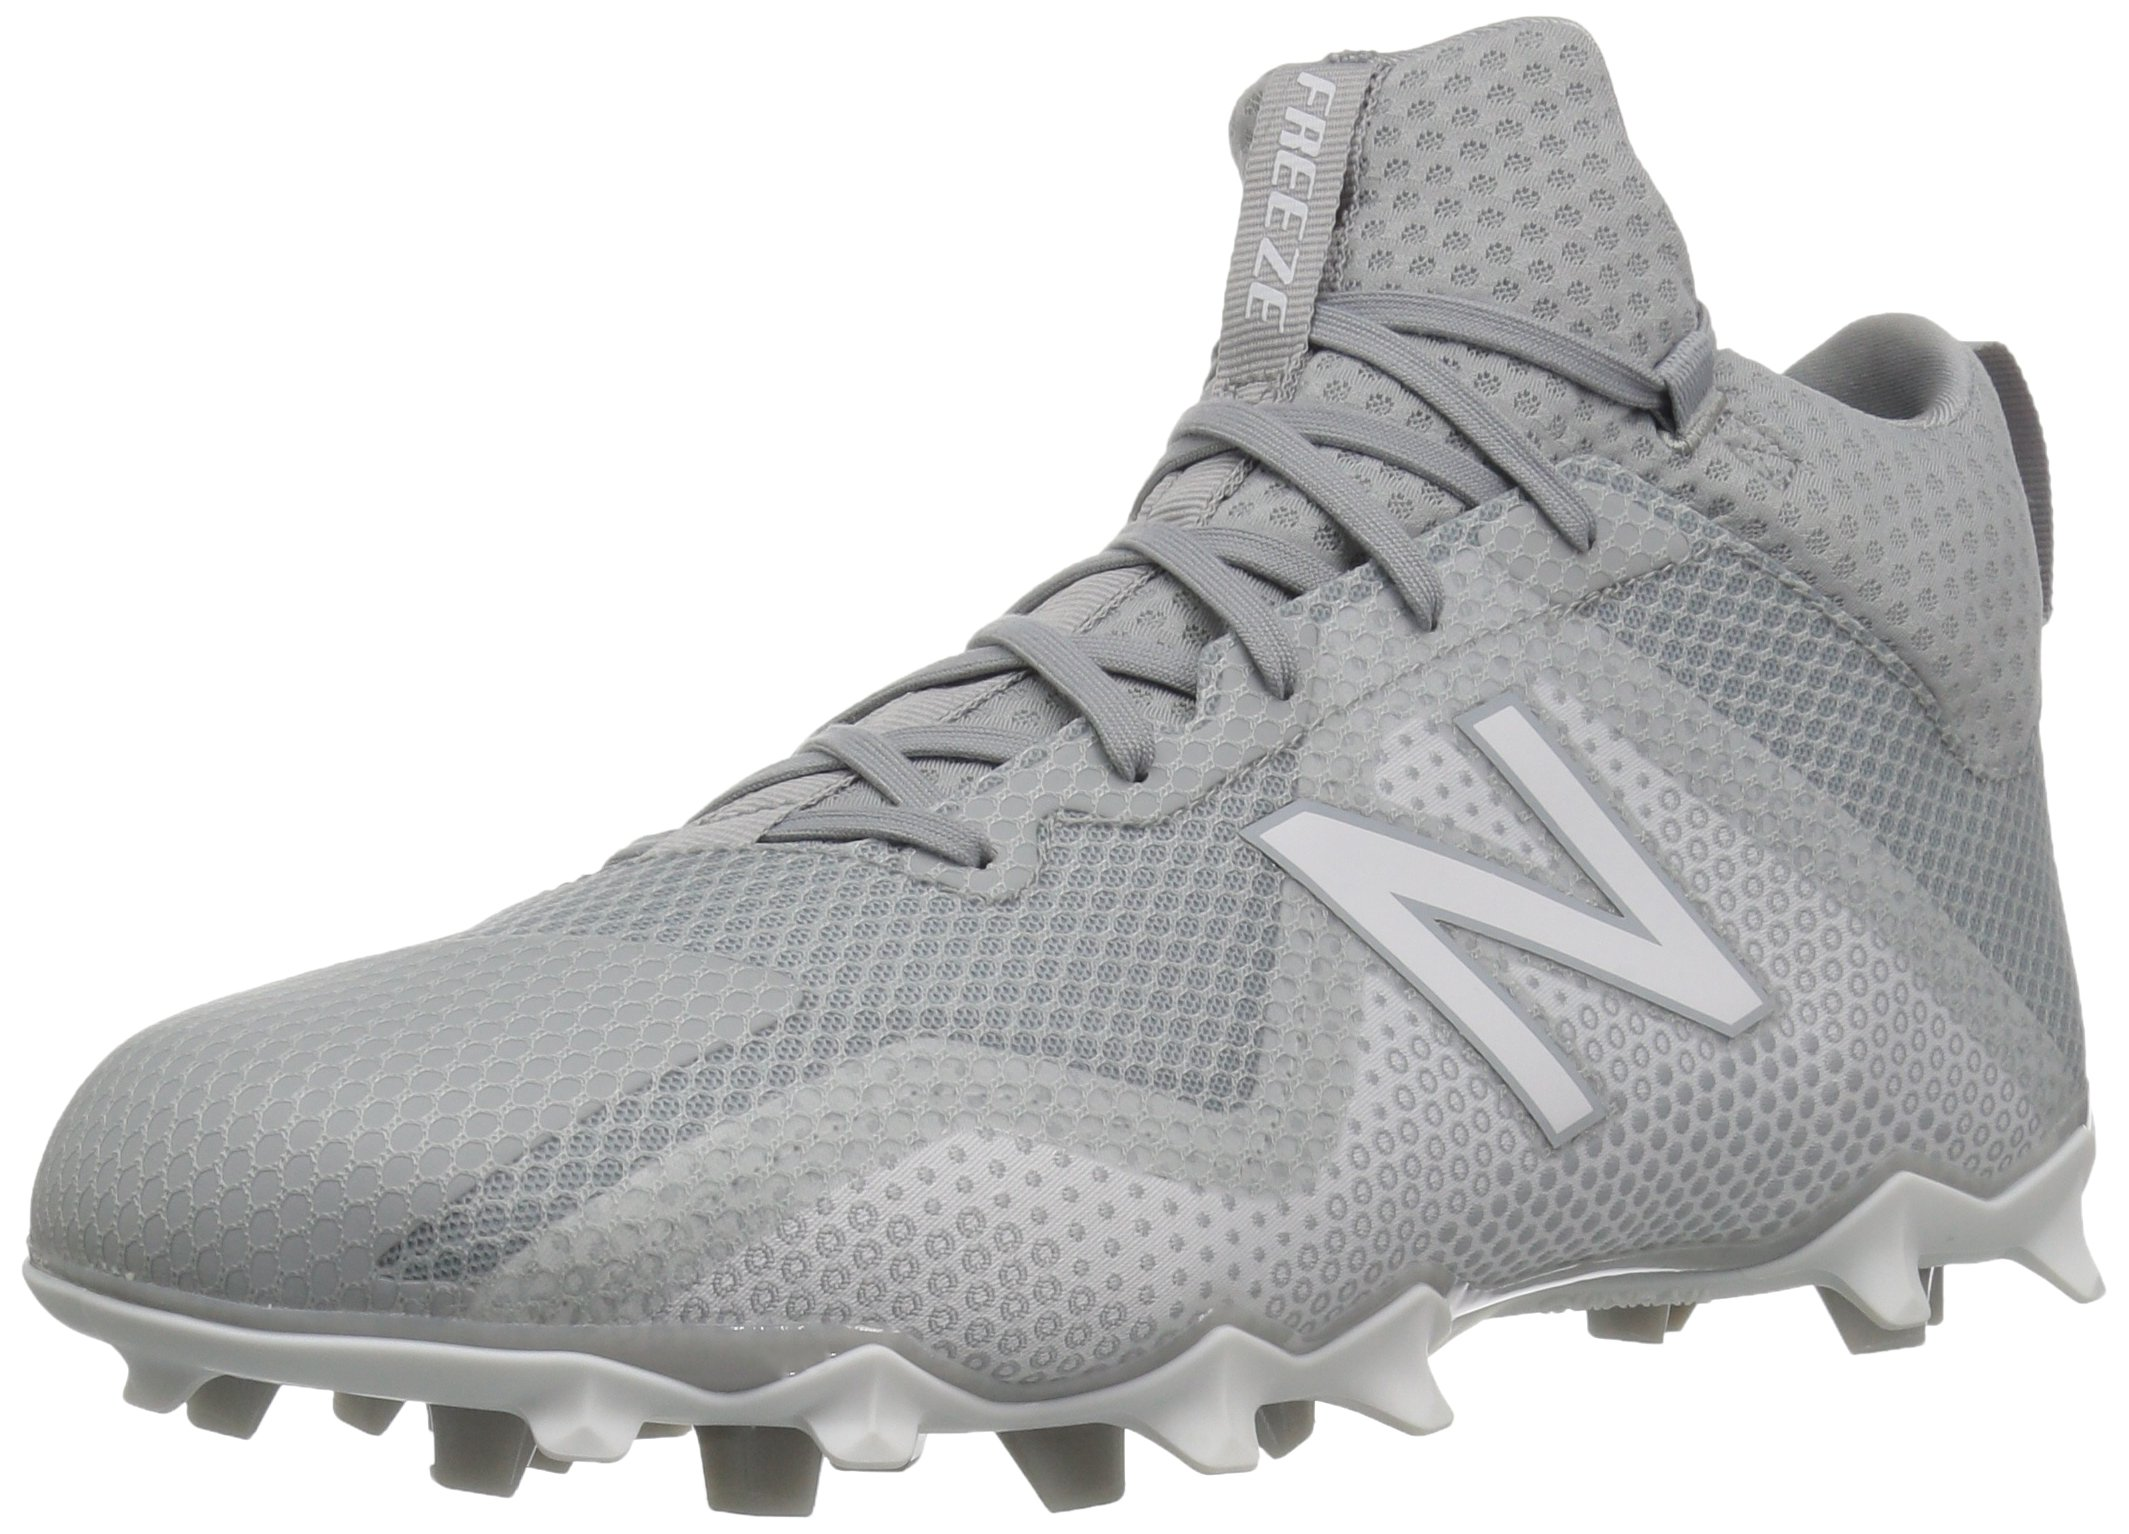 New Balance Men's Freeze v1 Agility Lacrosse Shoe, Grey/White, 10.5 2E US by New Balance